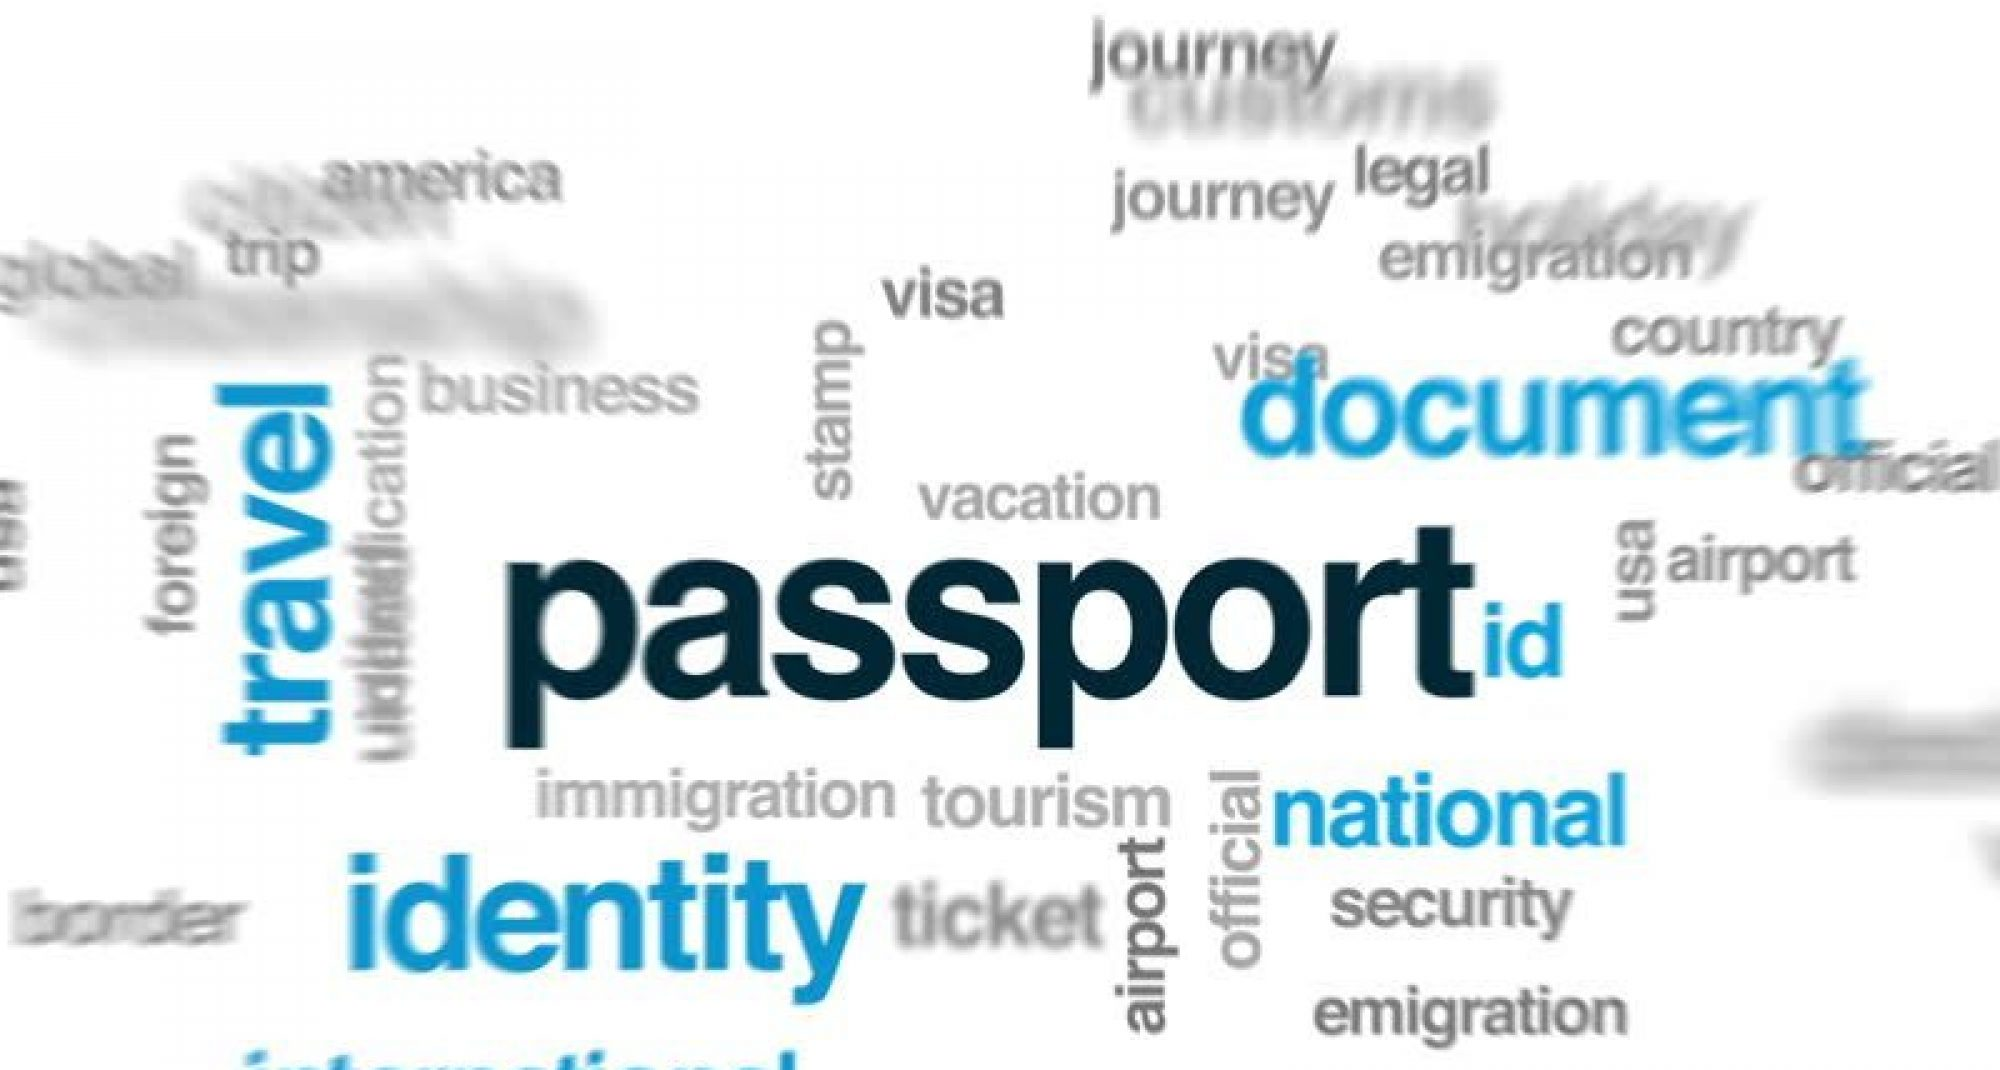 Smart immigration solutions